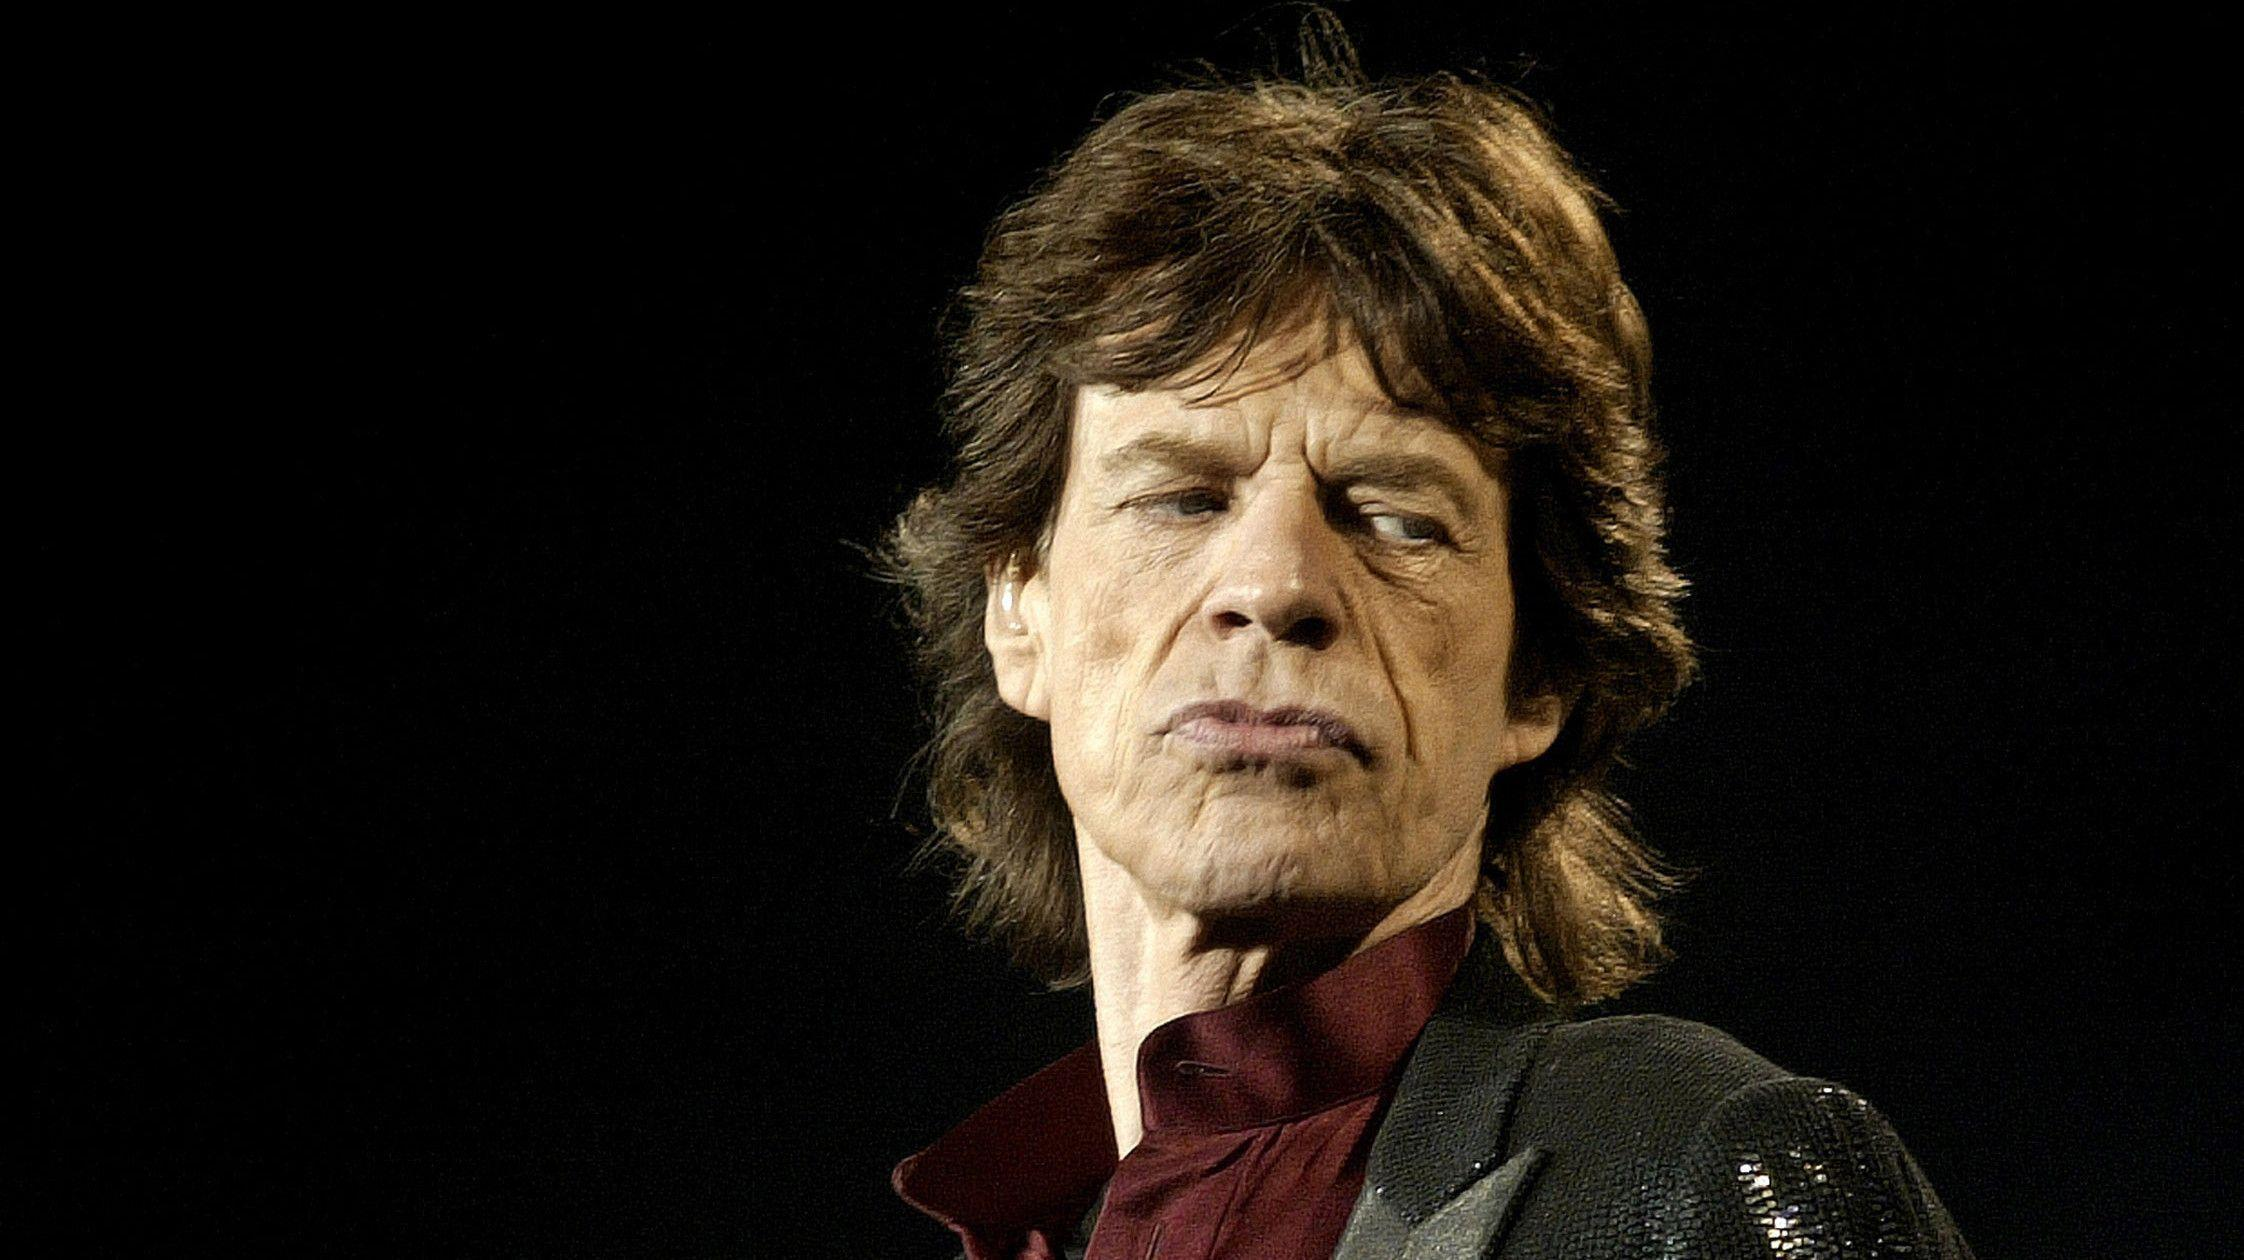 Mick Jagger 2 - Wallpapers AM